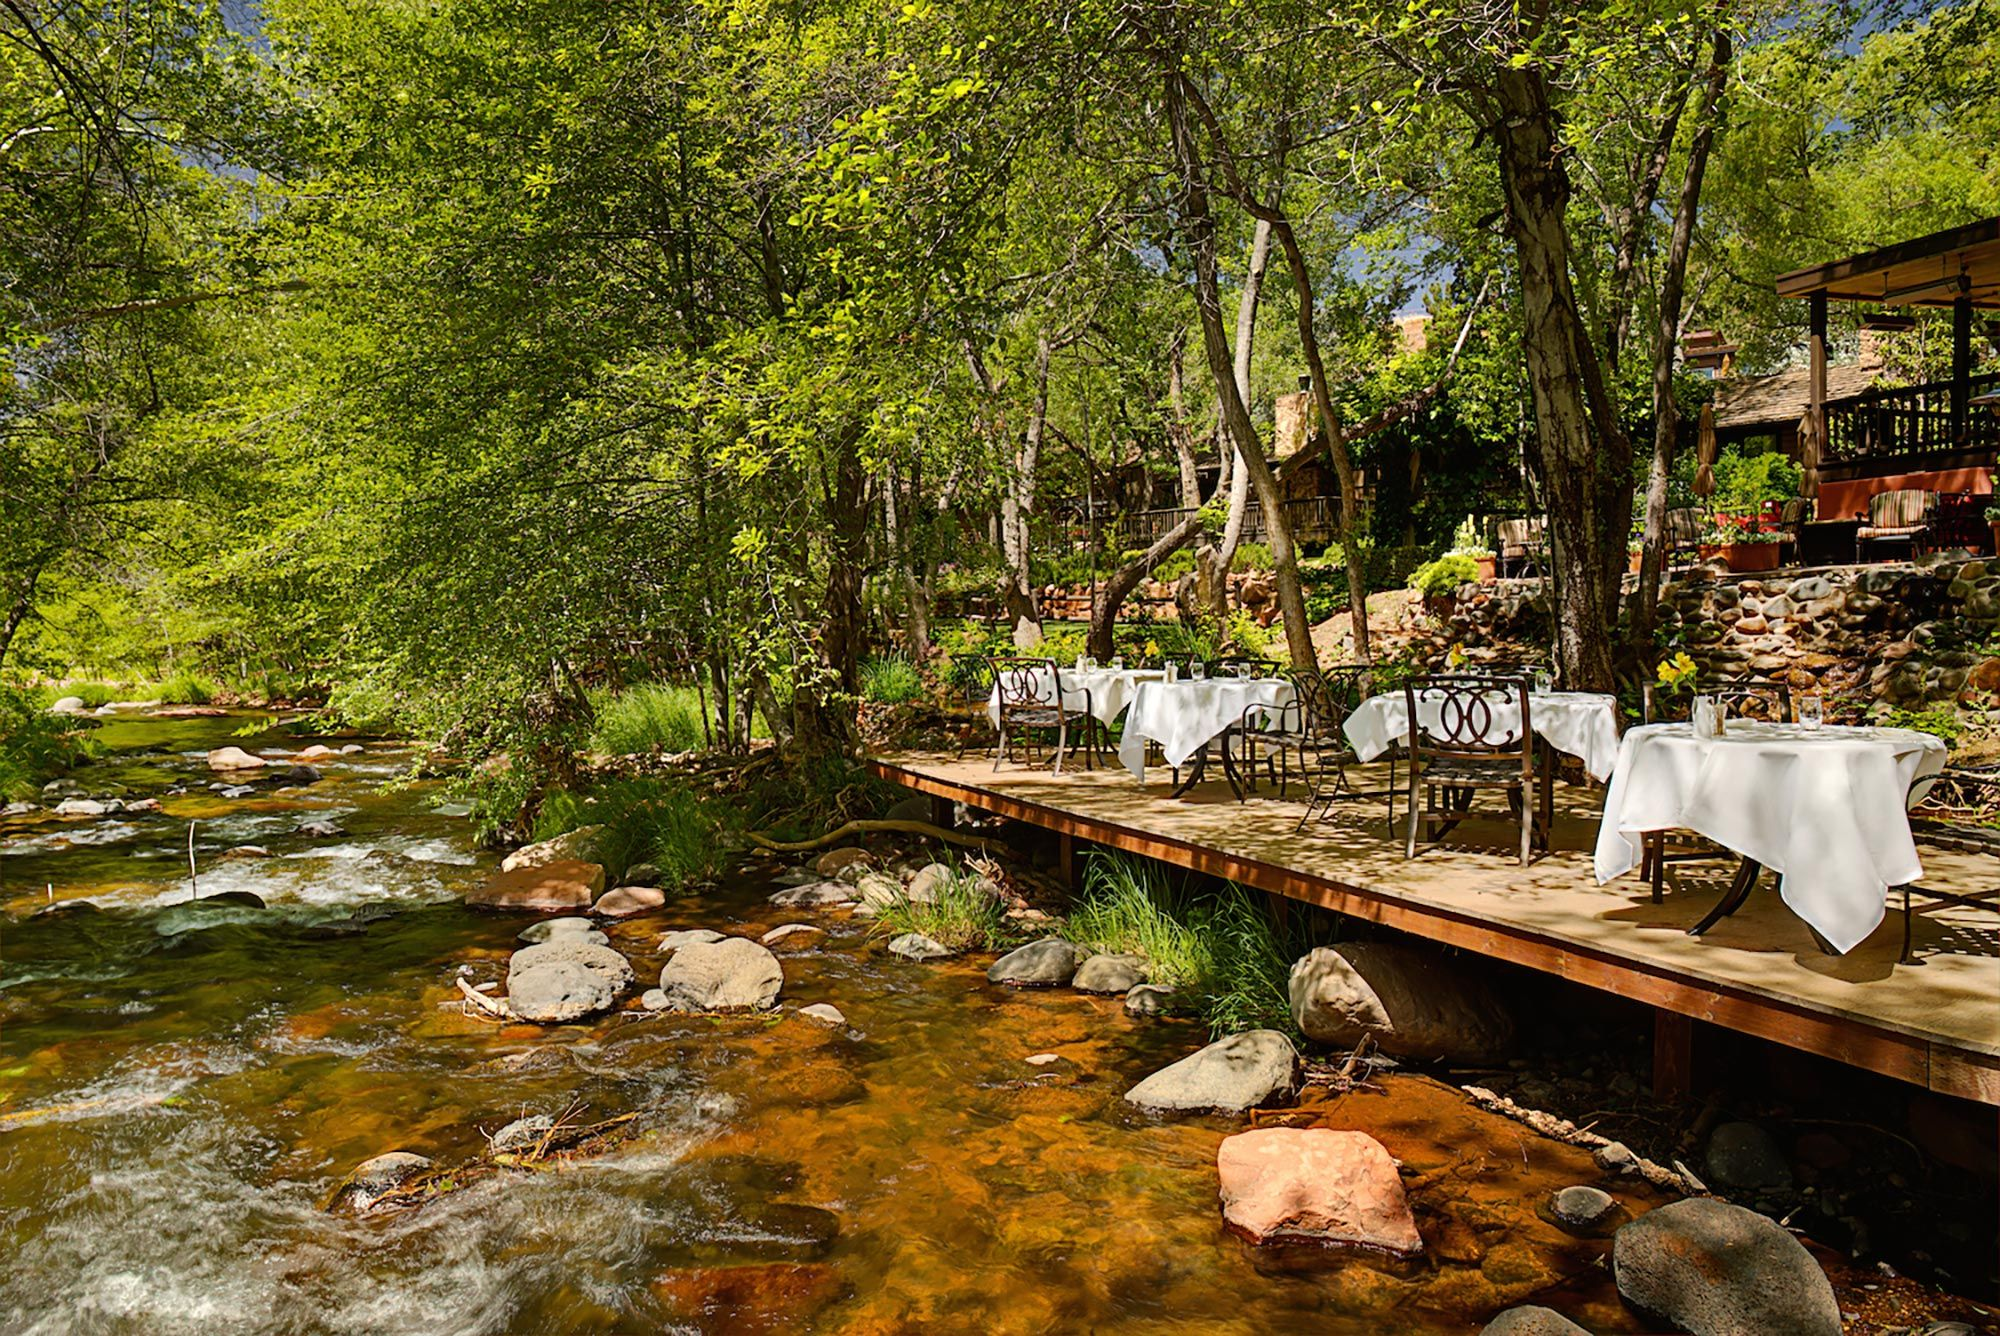 Browse photos of our beautiful Sedona resort, including the spa, dining and…L'auberge